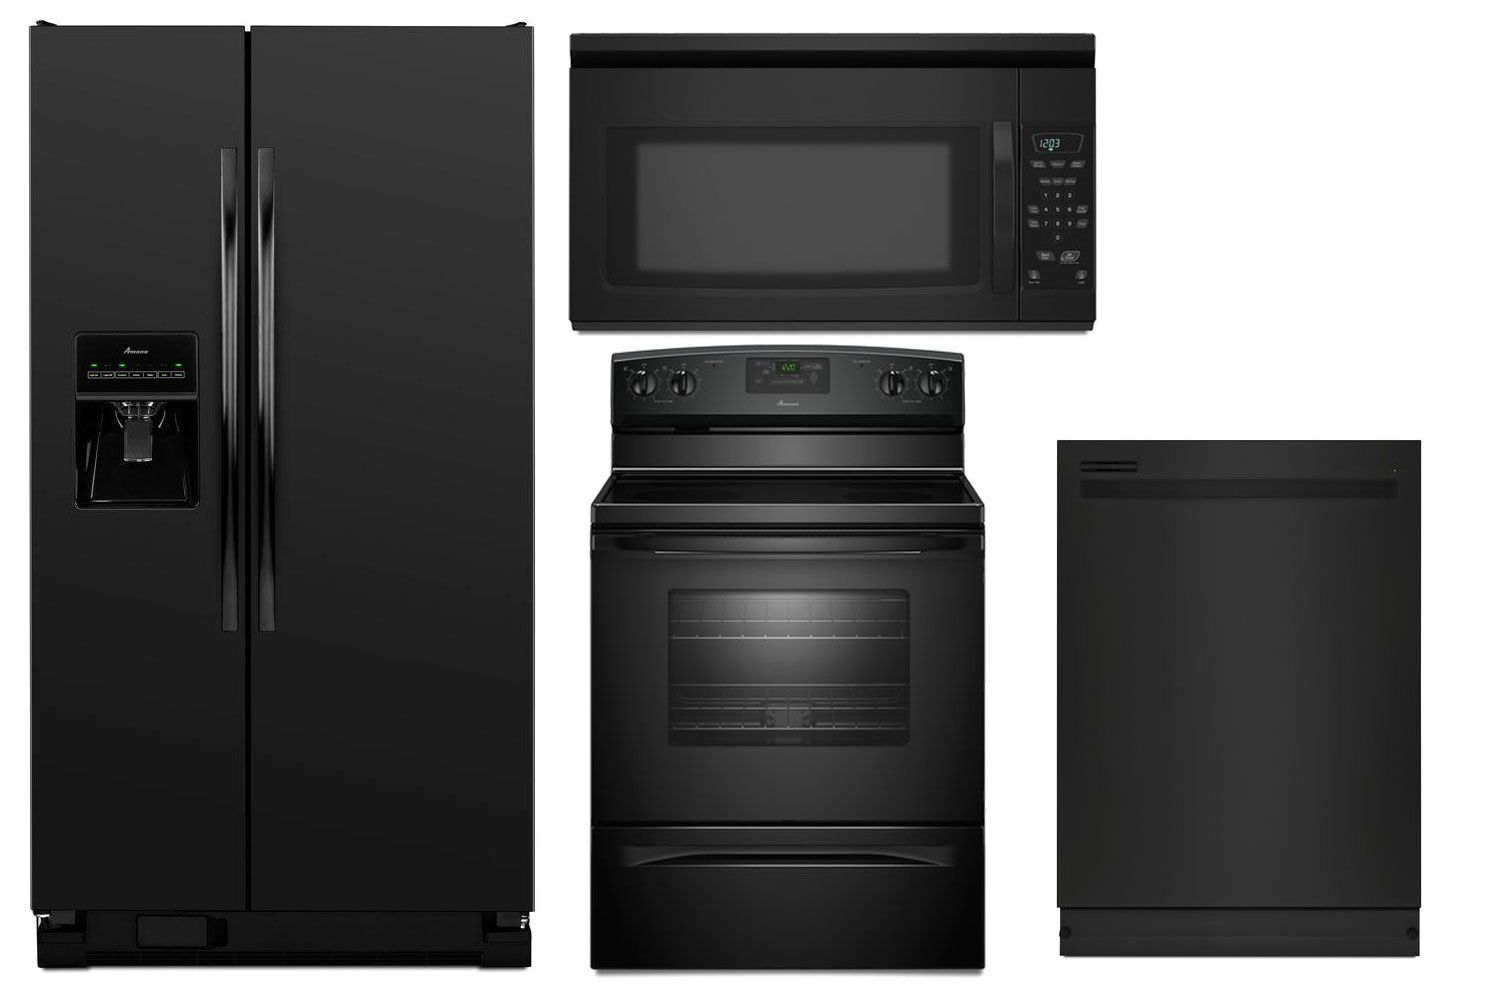 appliance package in black amana side by side refrigerator asd2575brbamana black stove aer5330bab  appliance package in black amana side by side refrigerator      rh   pinterest com